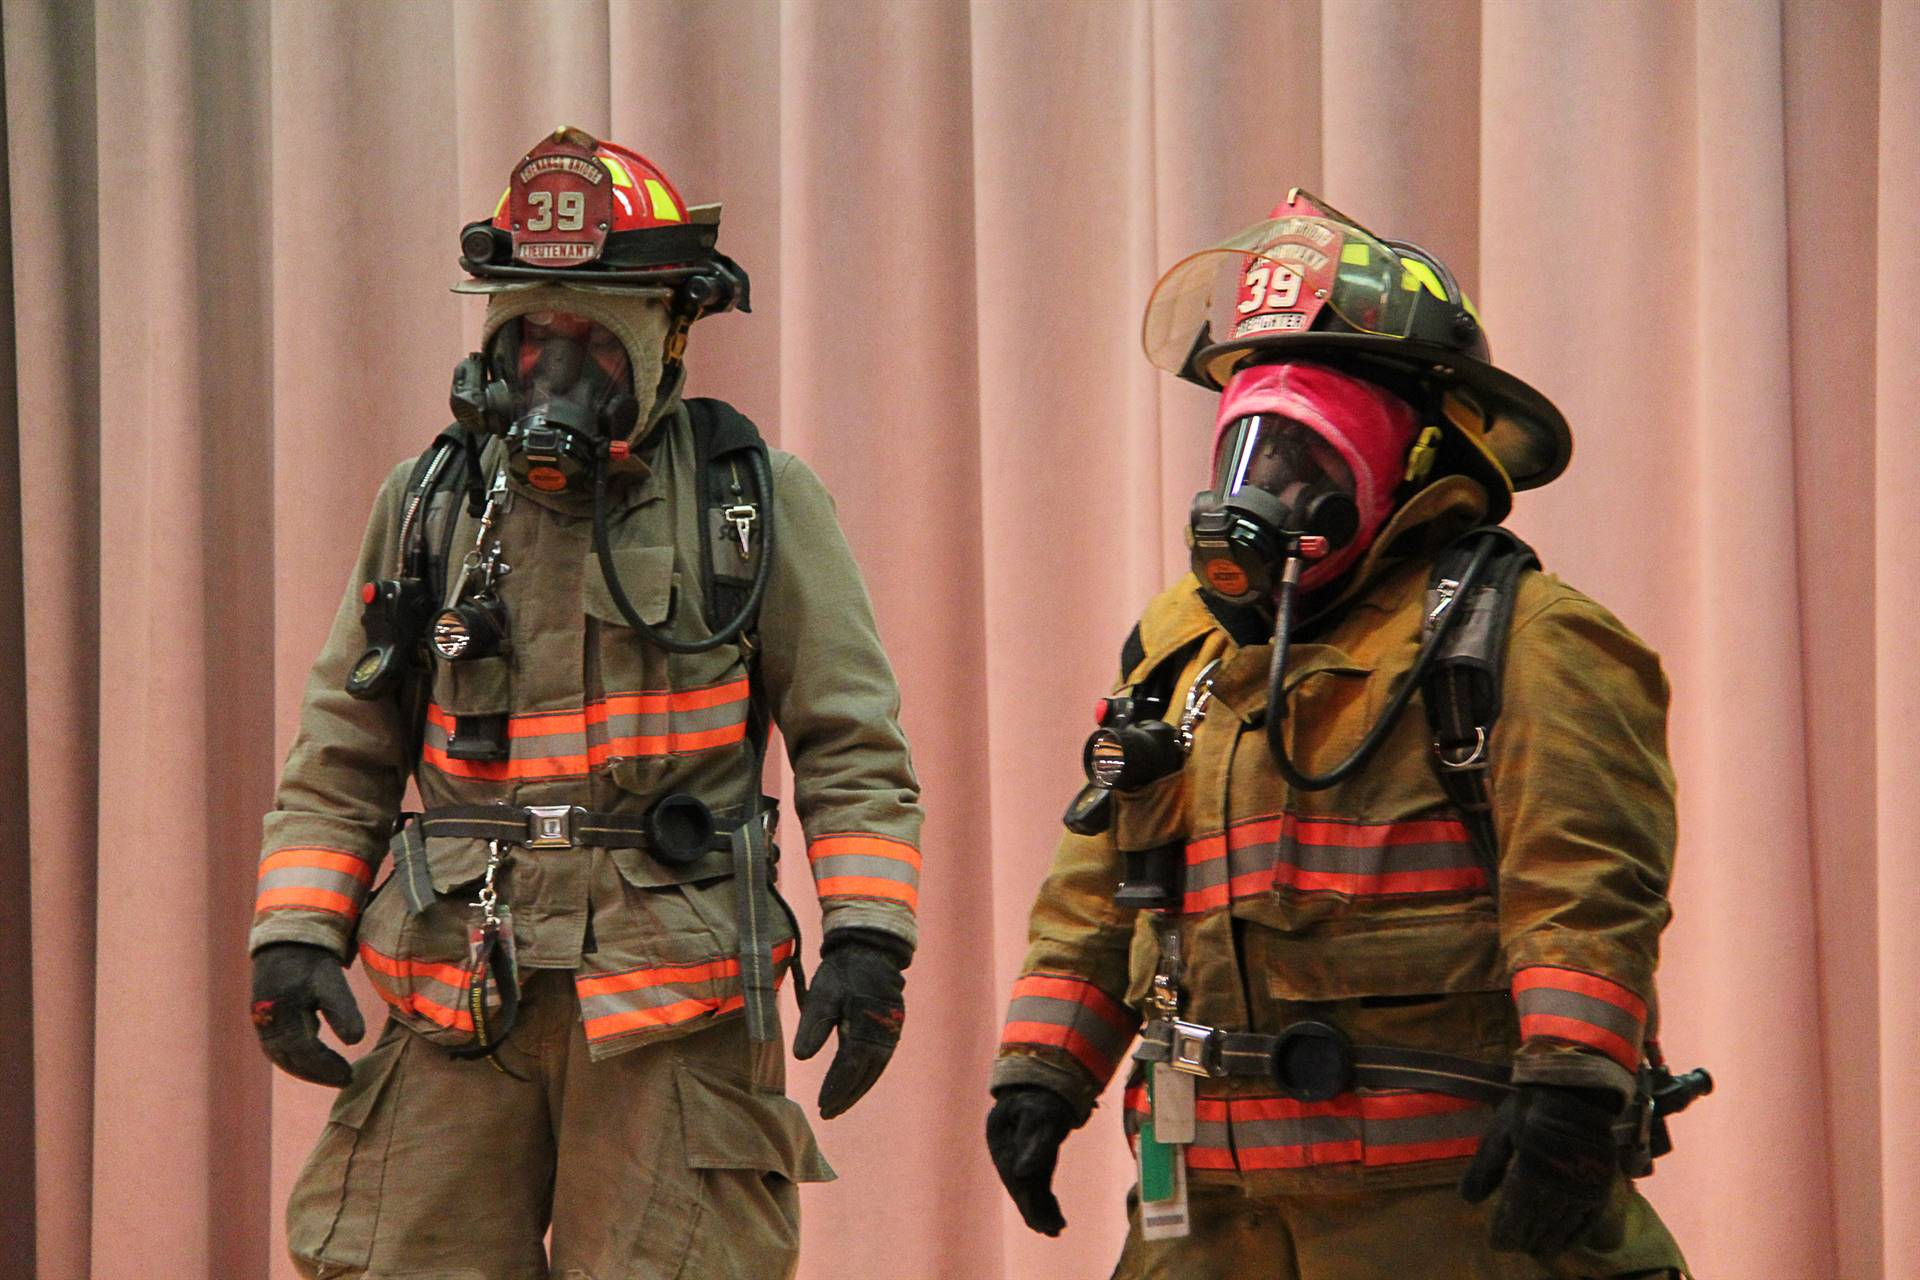 firefighters dressed in their gear